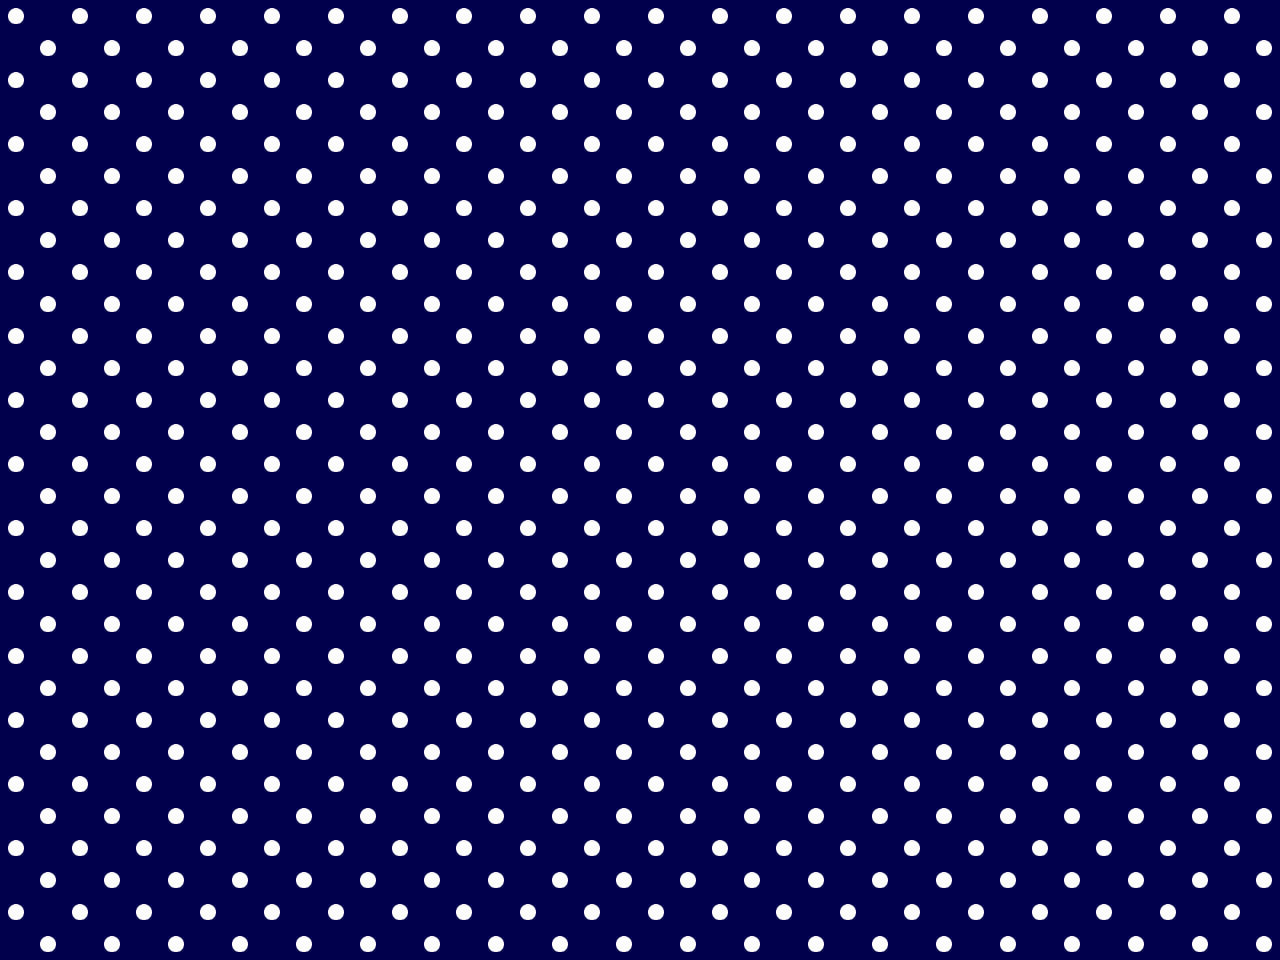 Midnight Blue Polka Dotted Background